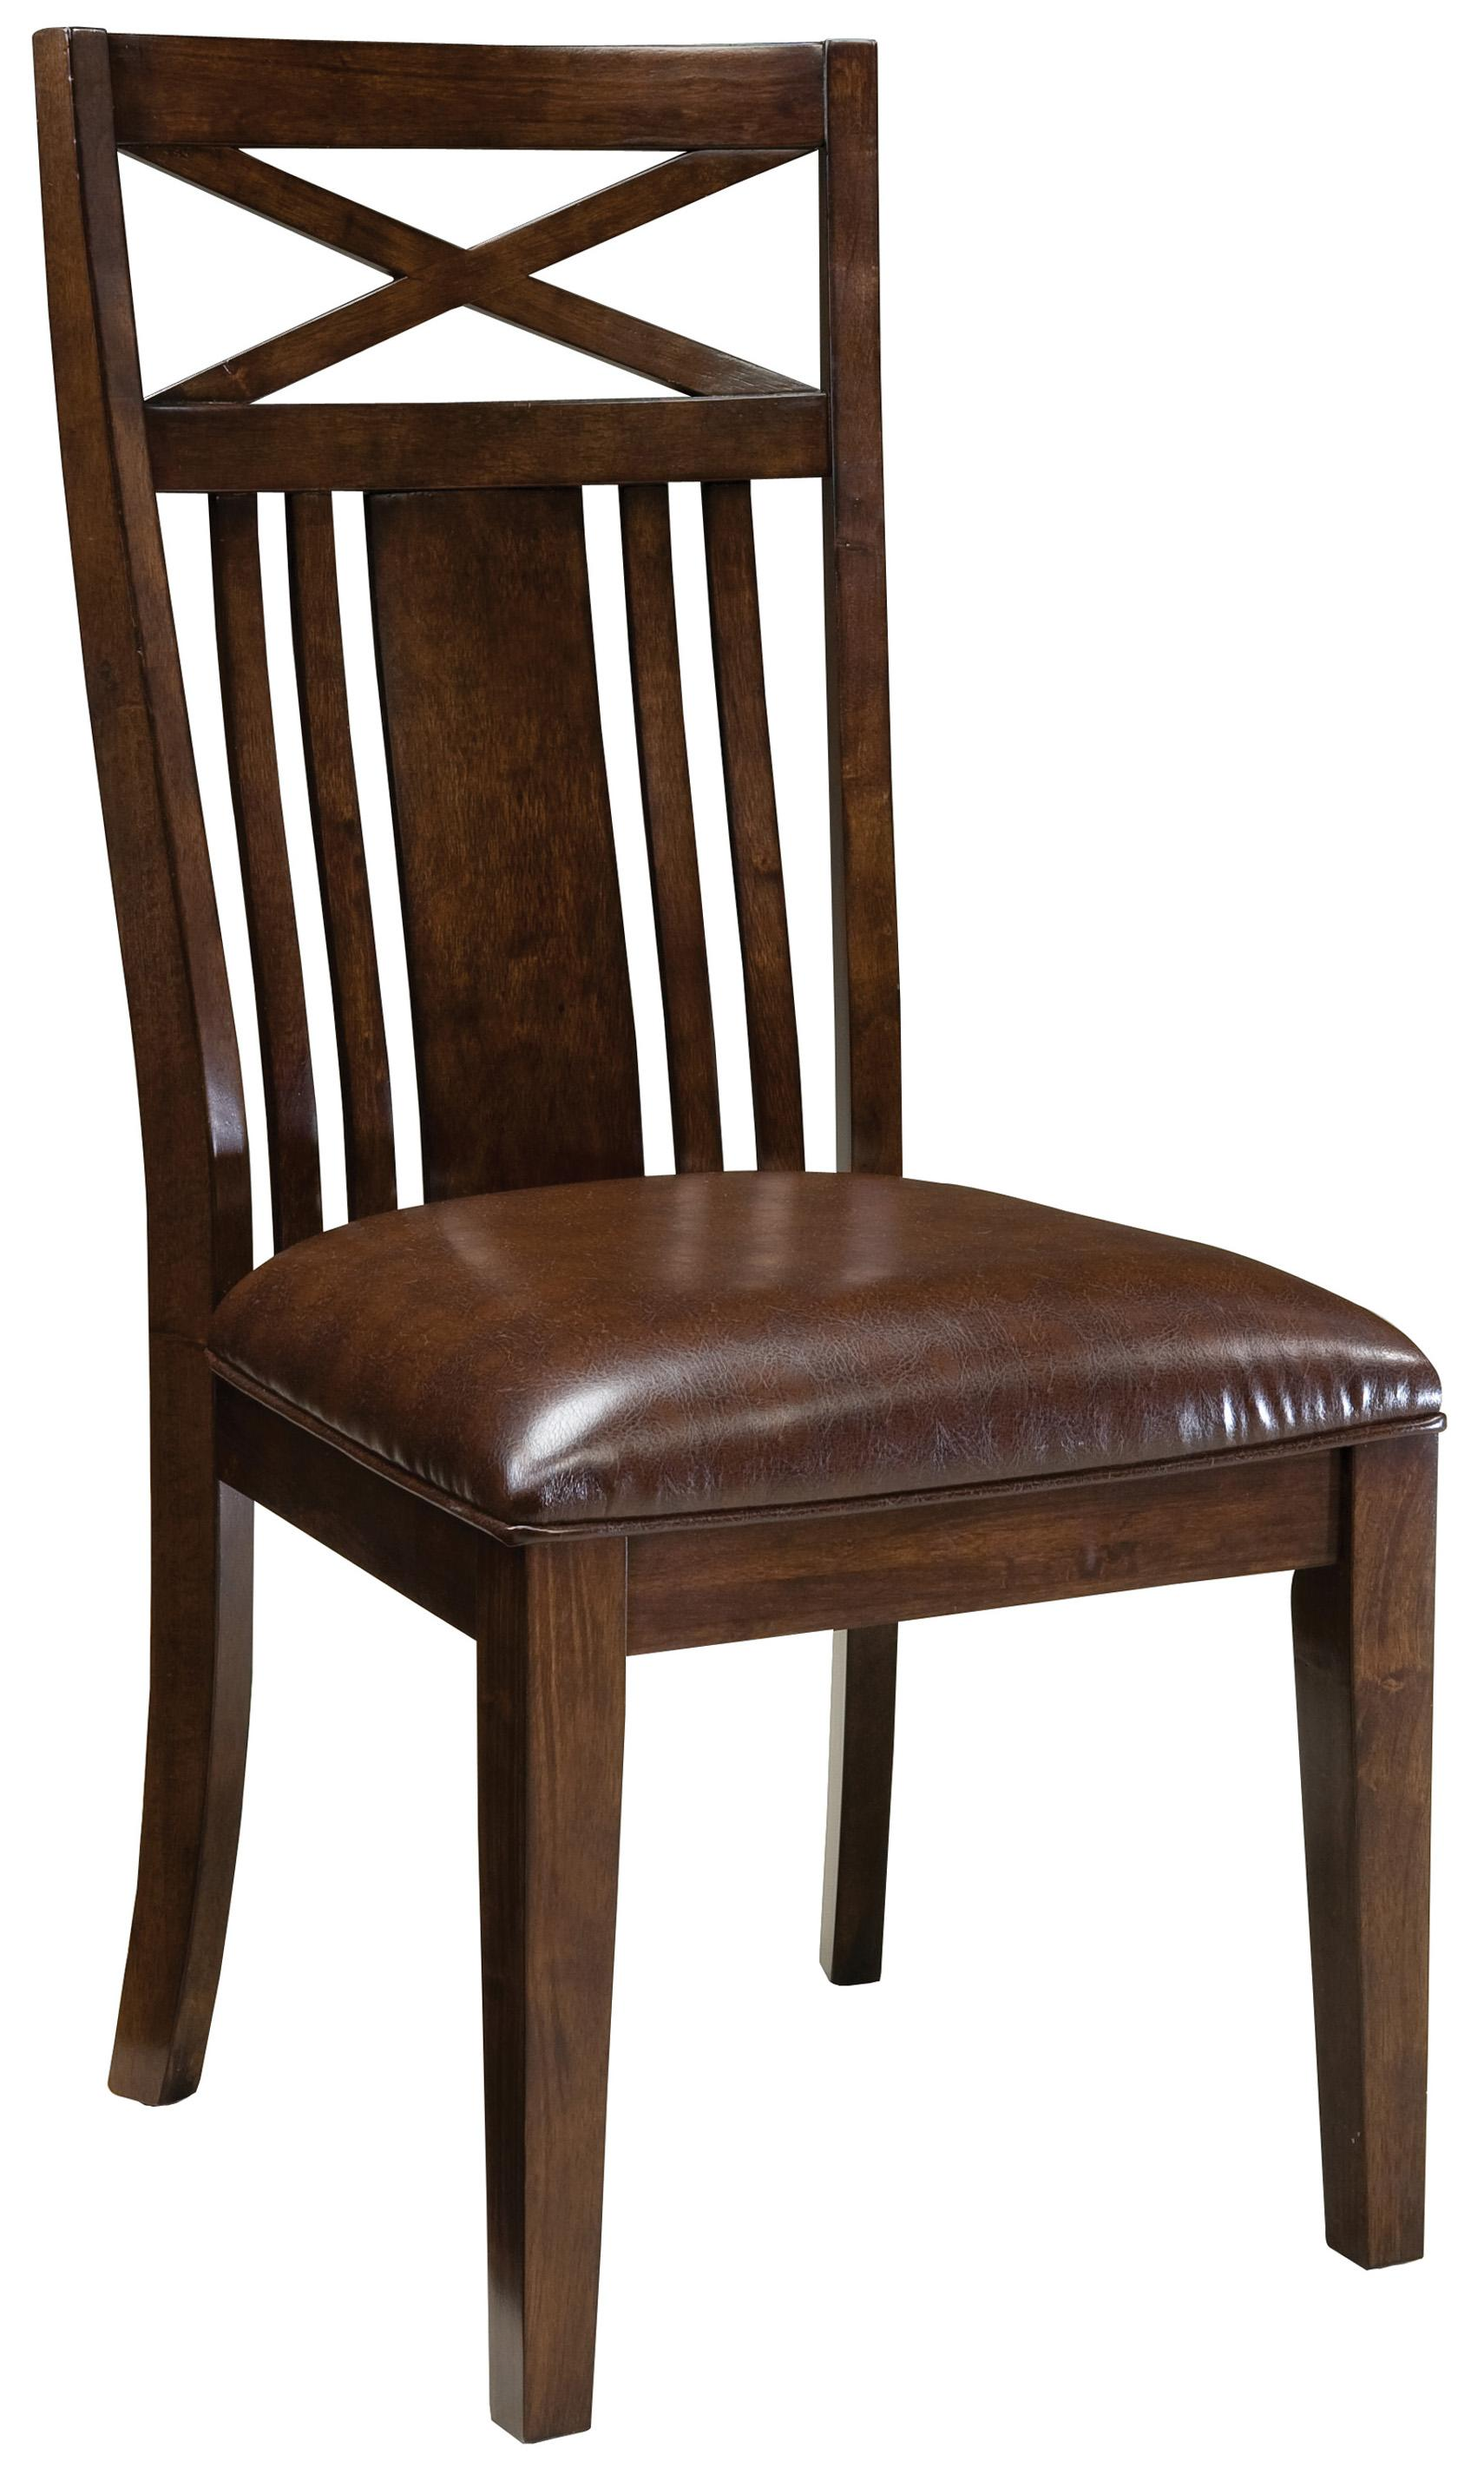 Standard Furniture Sonoma Side Chair - Item Number: 11904